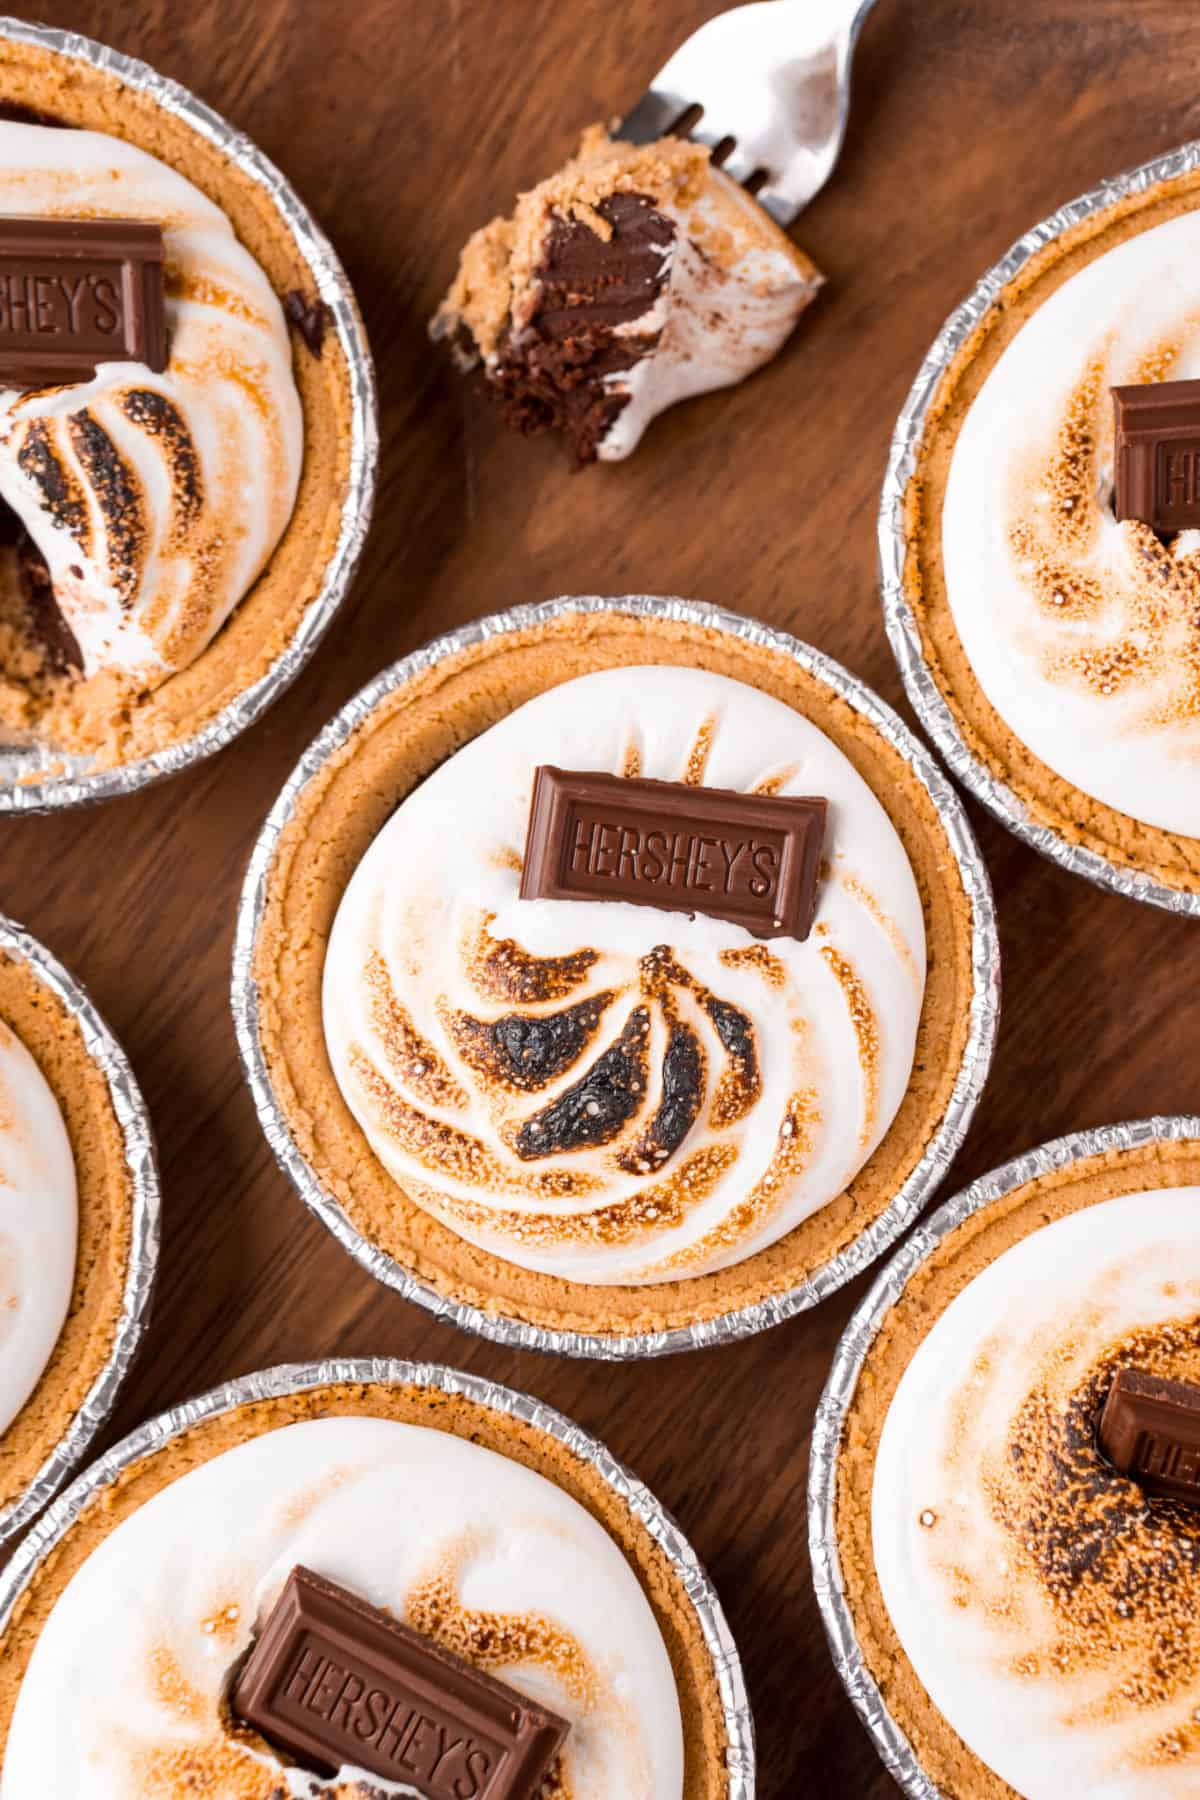 Mini s'mores pies with toasted marshmallow and chocolate bars on top.